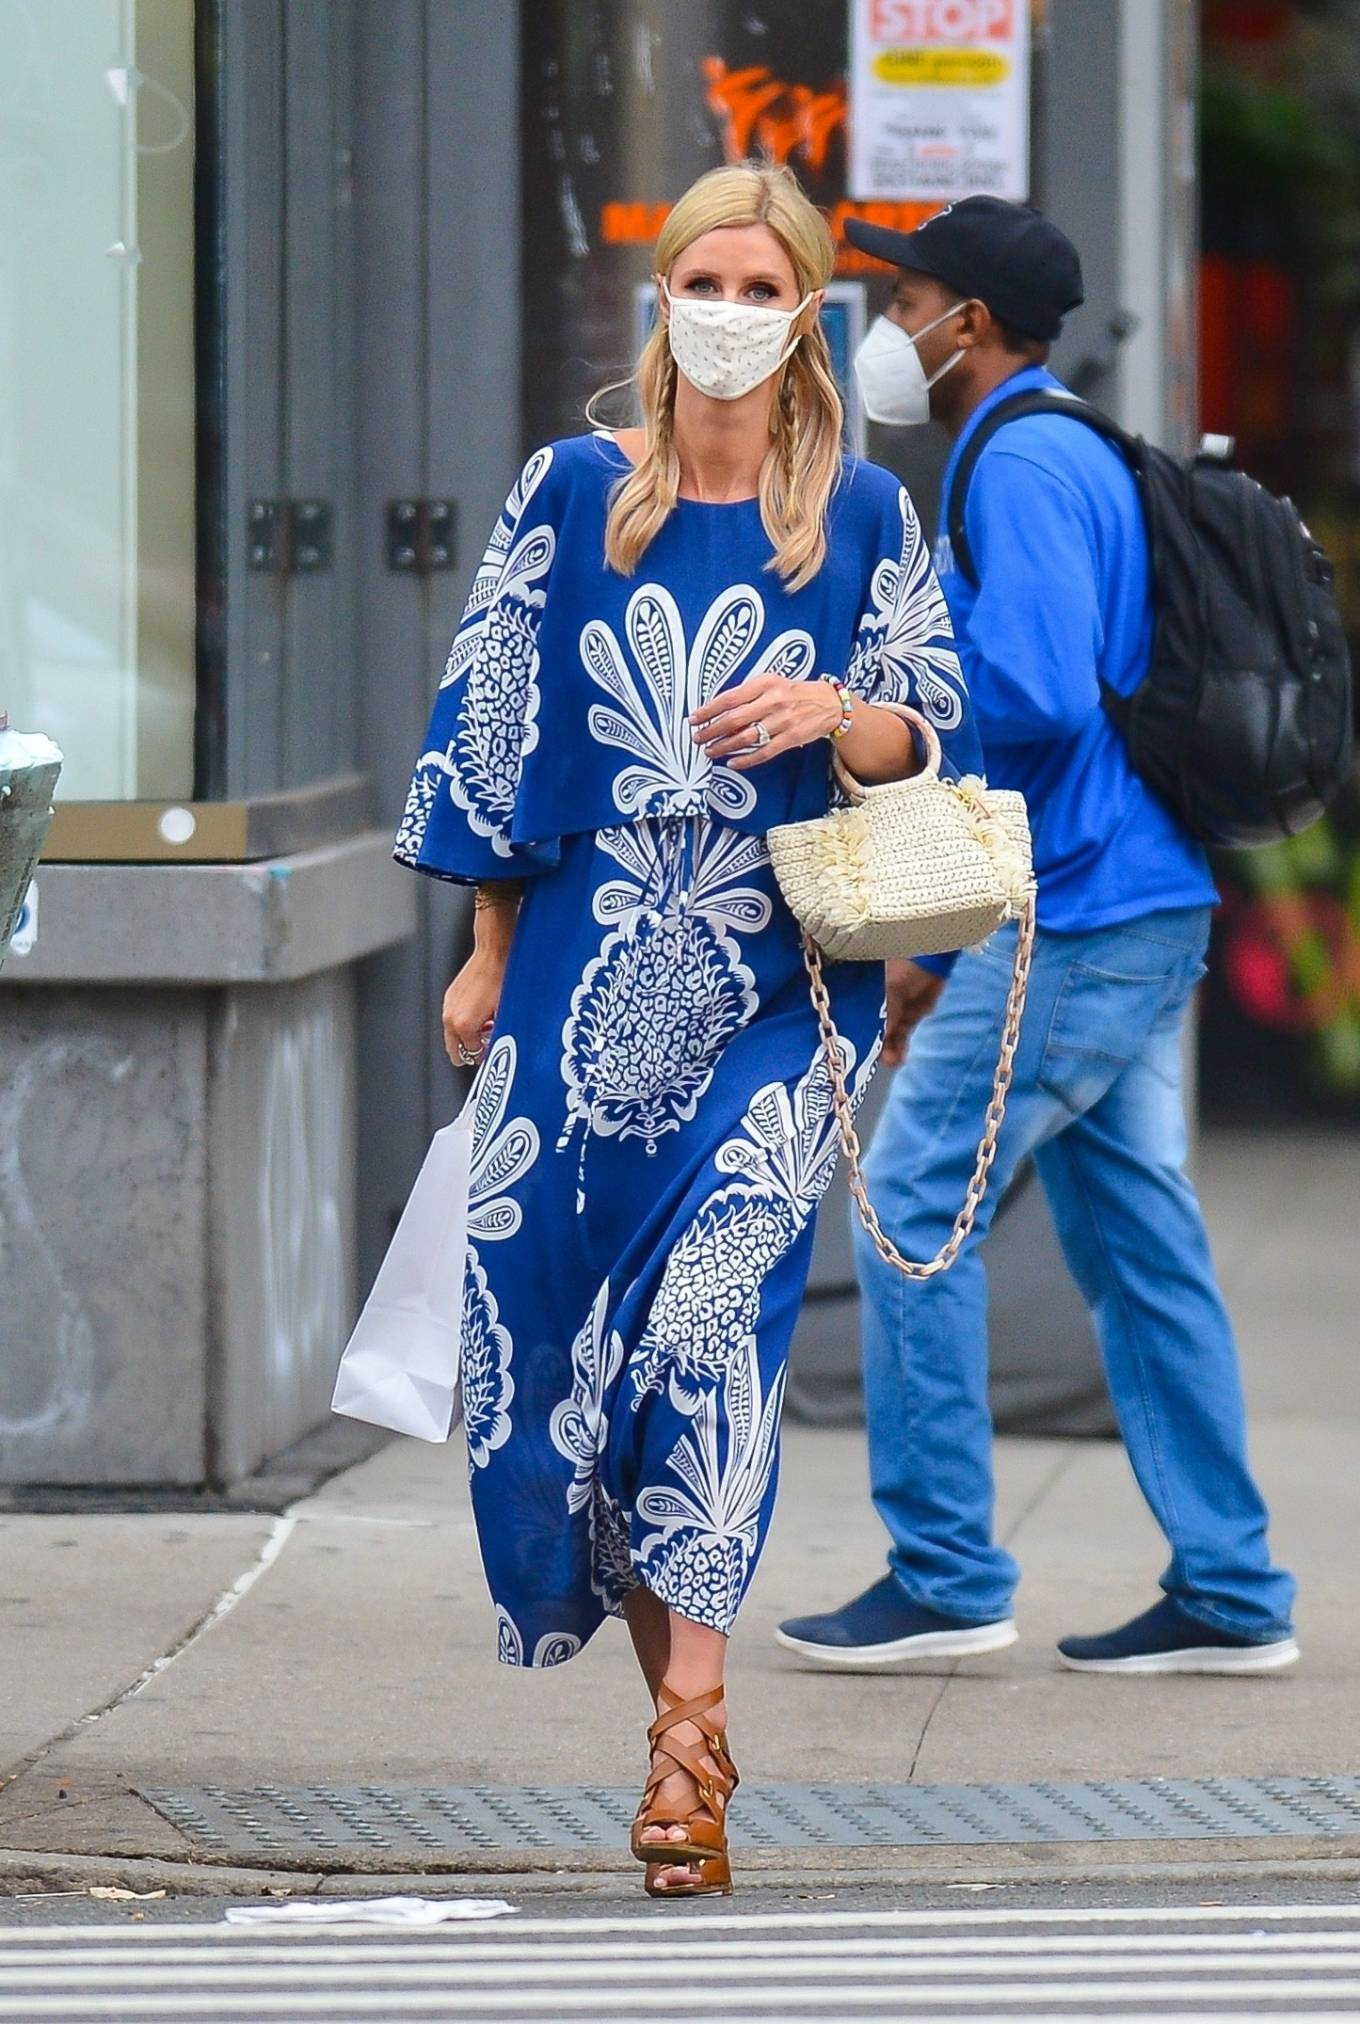 Nicky Hilton - In blue dress shopping in New York